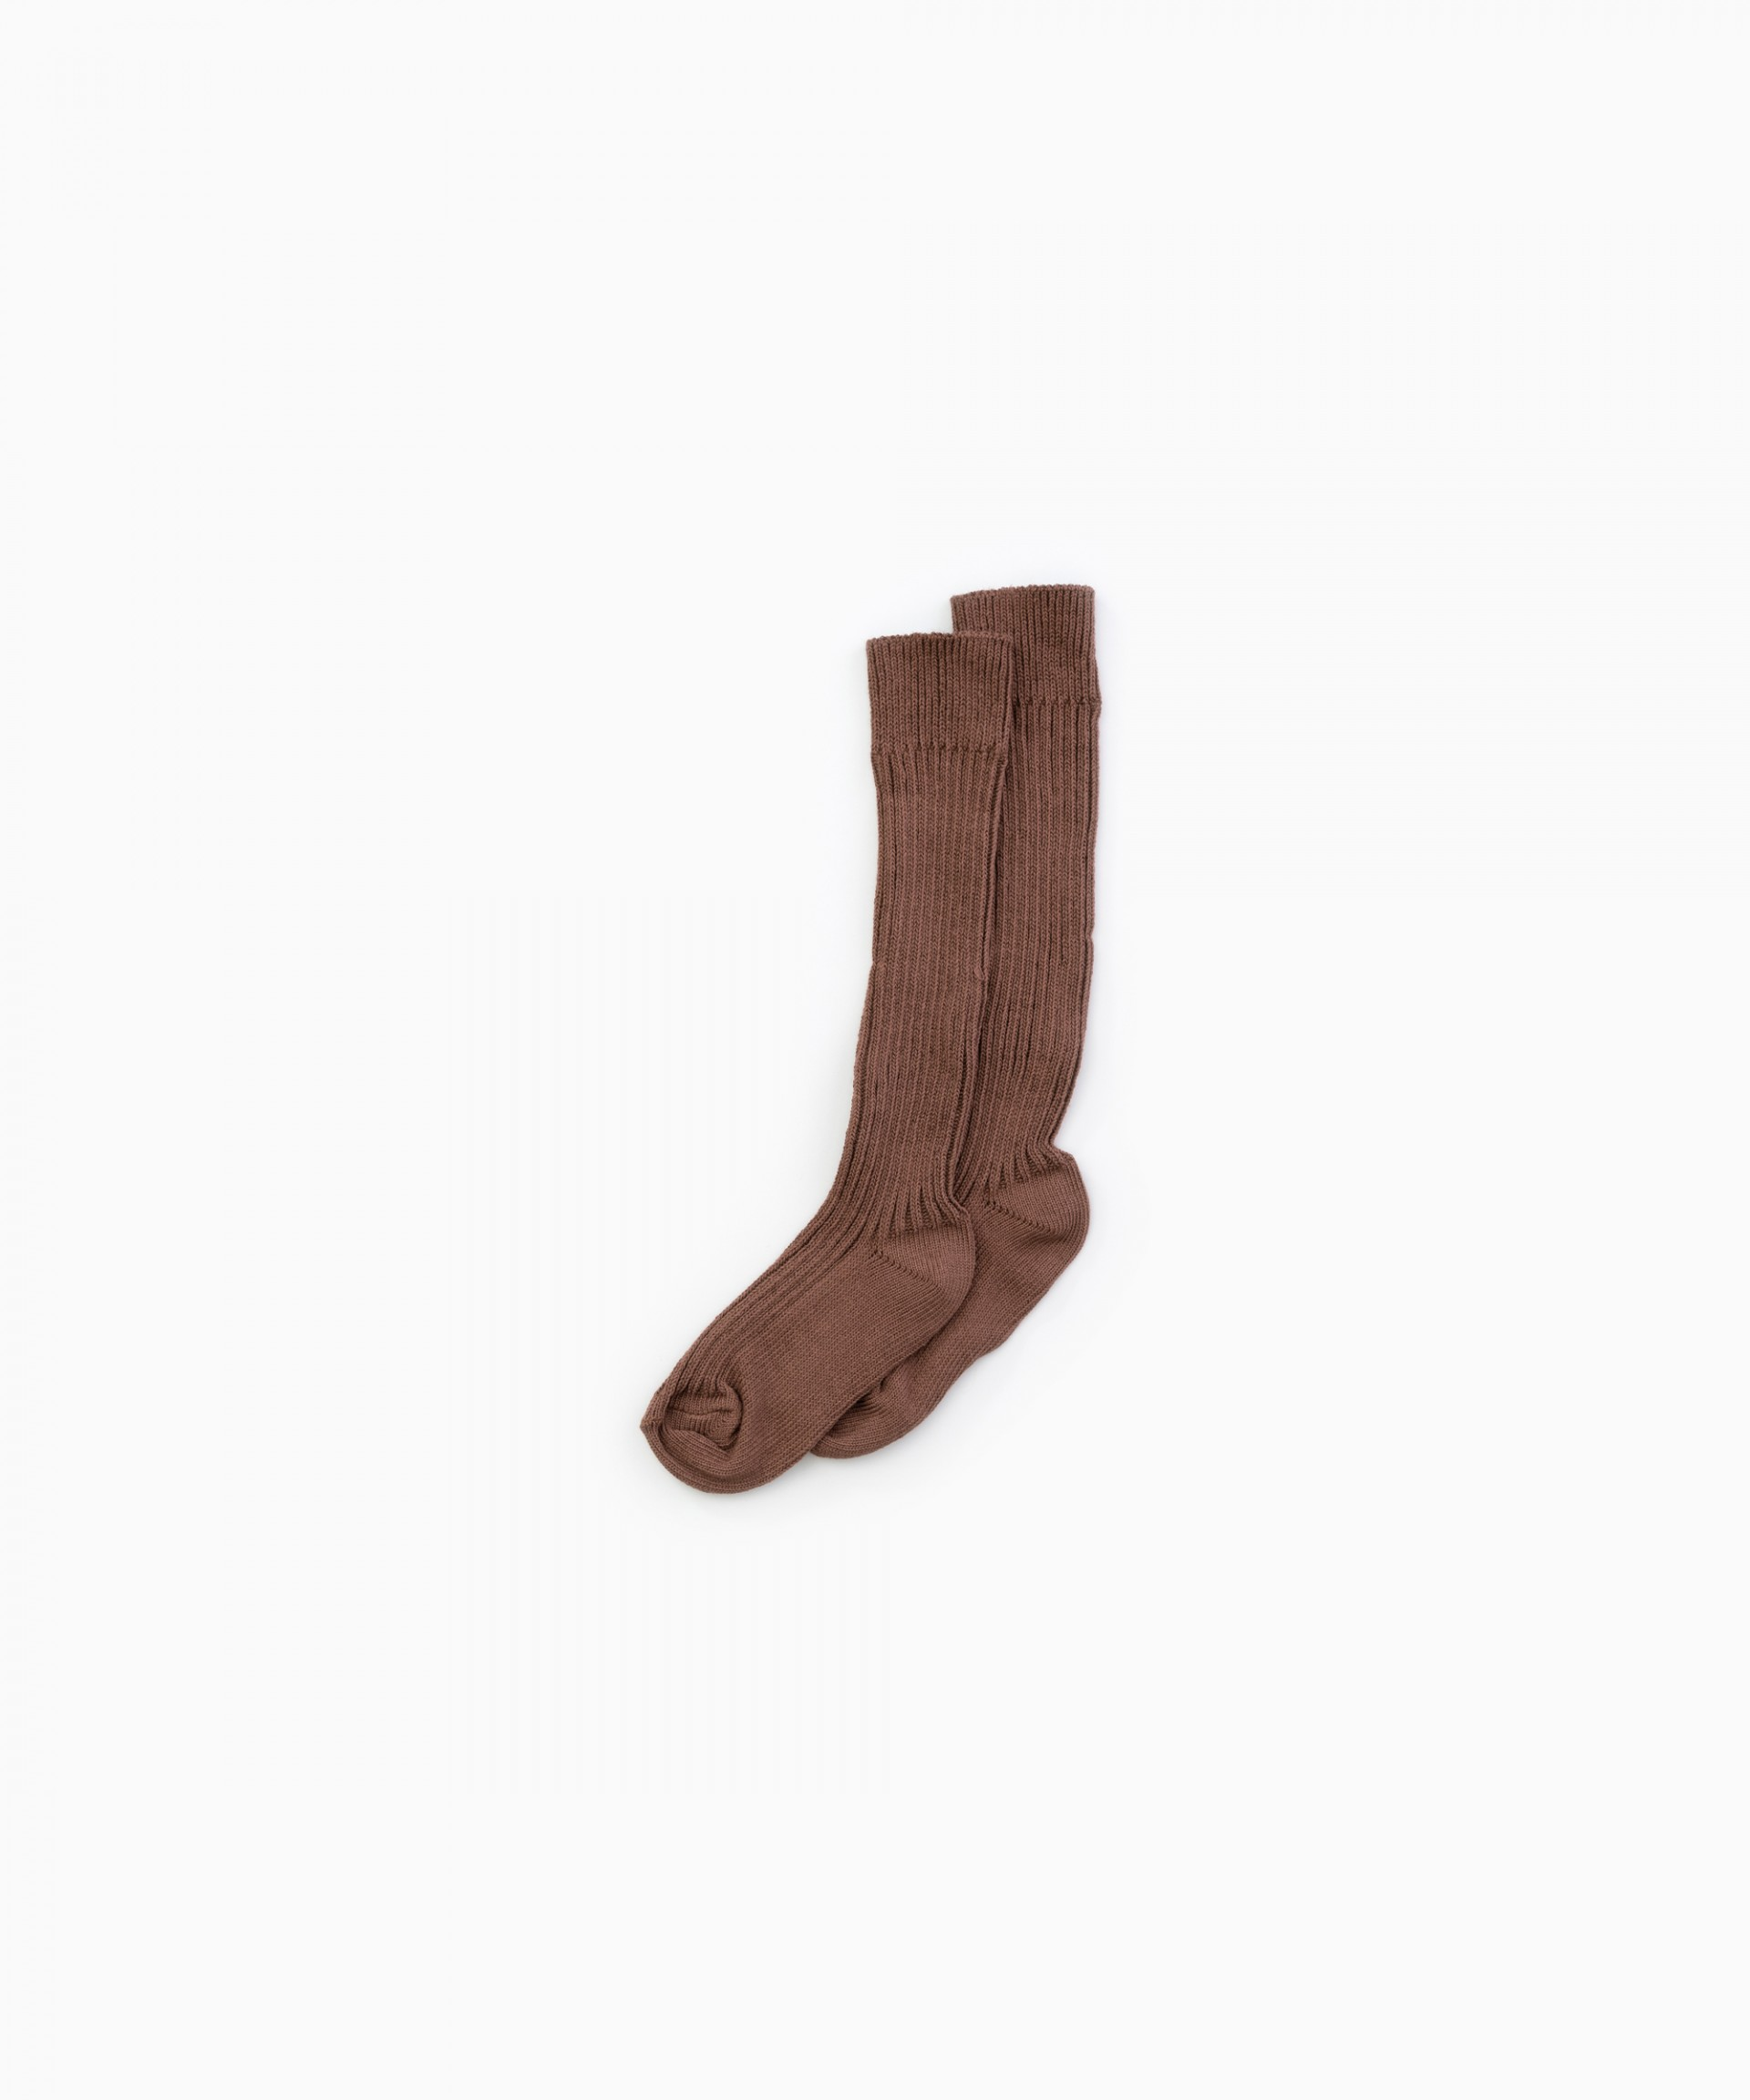 Long socks | Woodwork